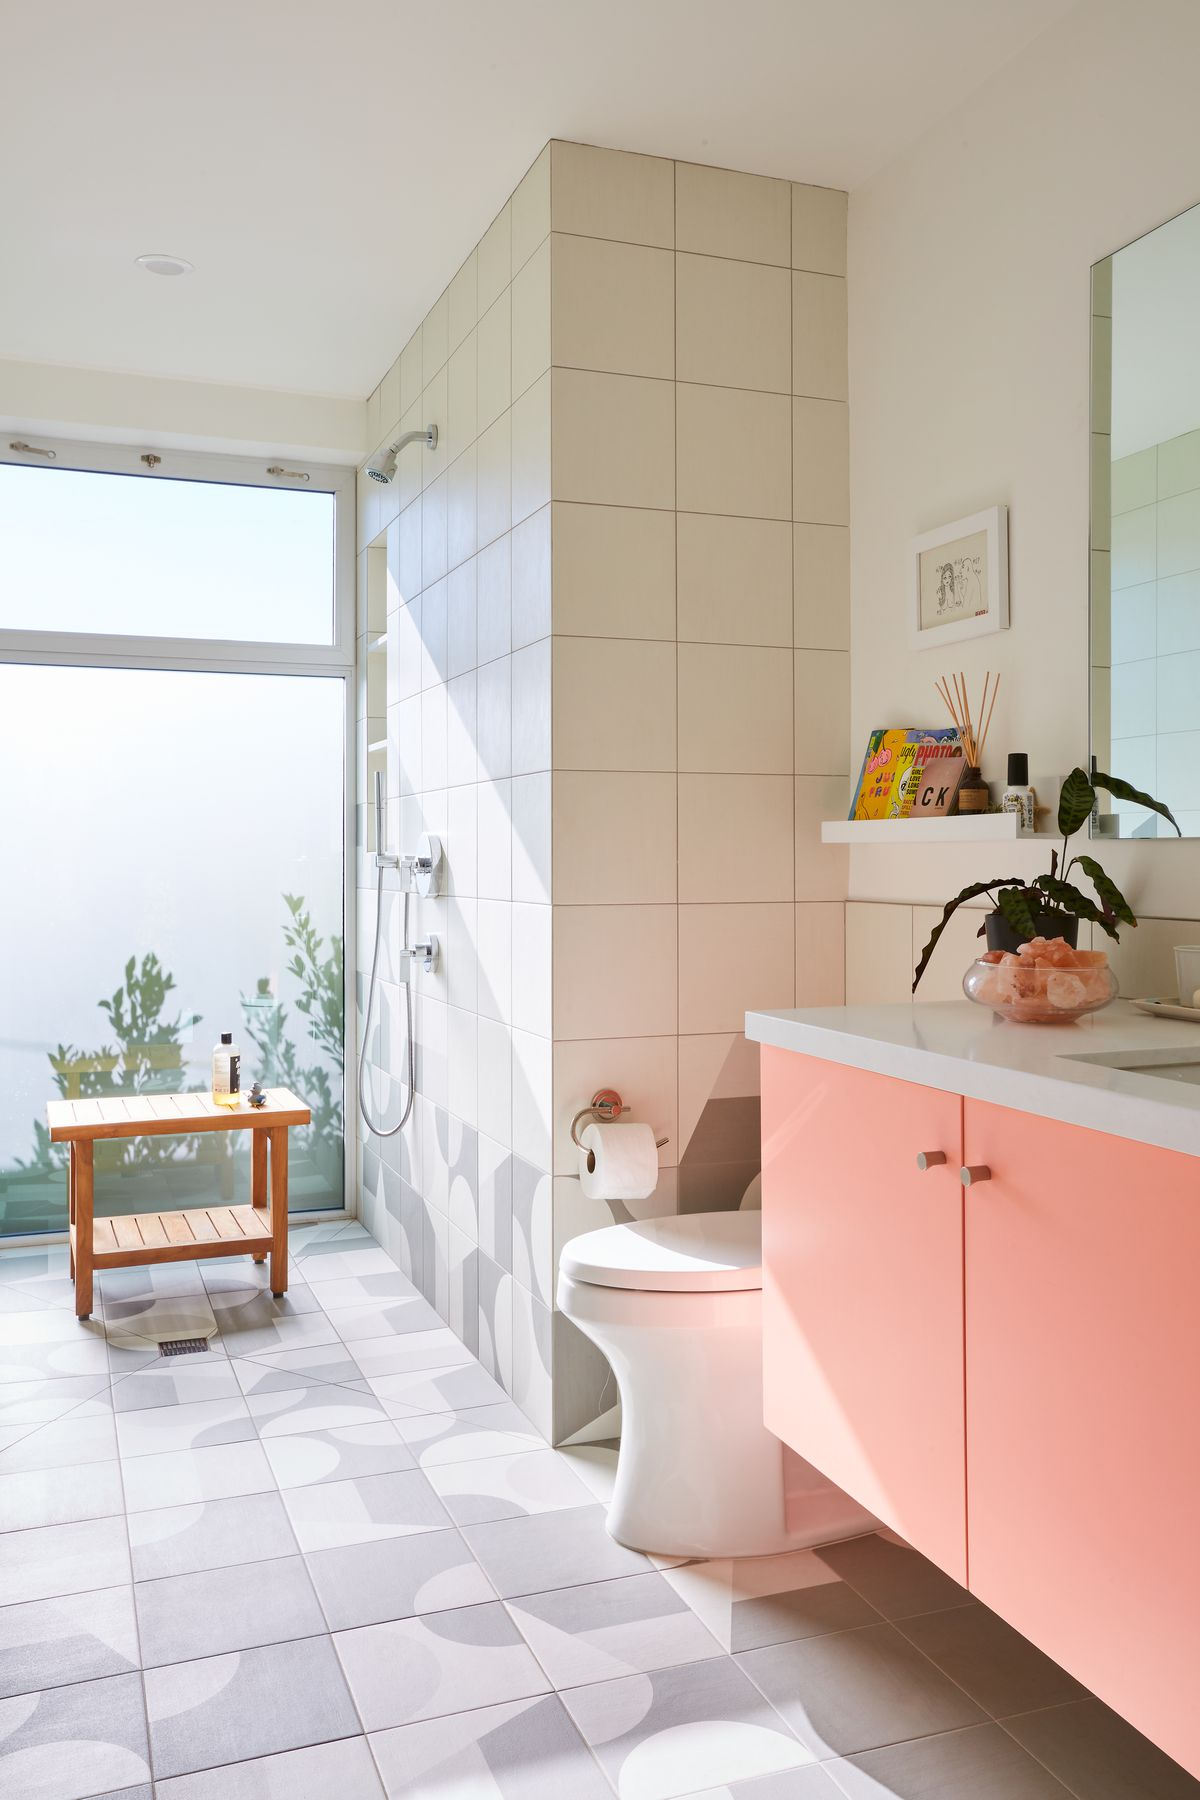 A bathroom with pink cabinetry and gray and white patterned floor tiles.